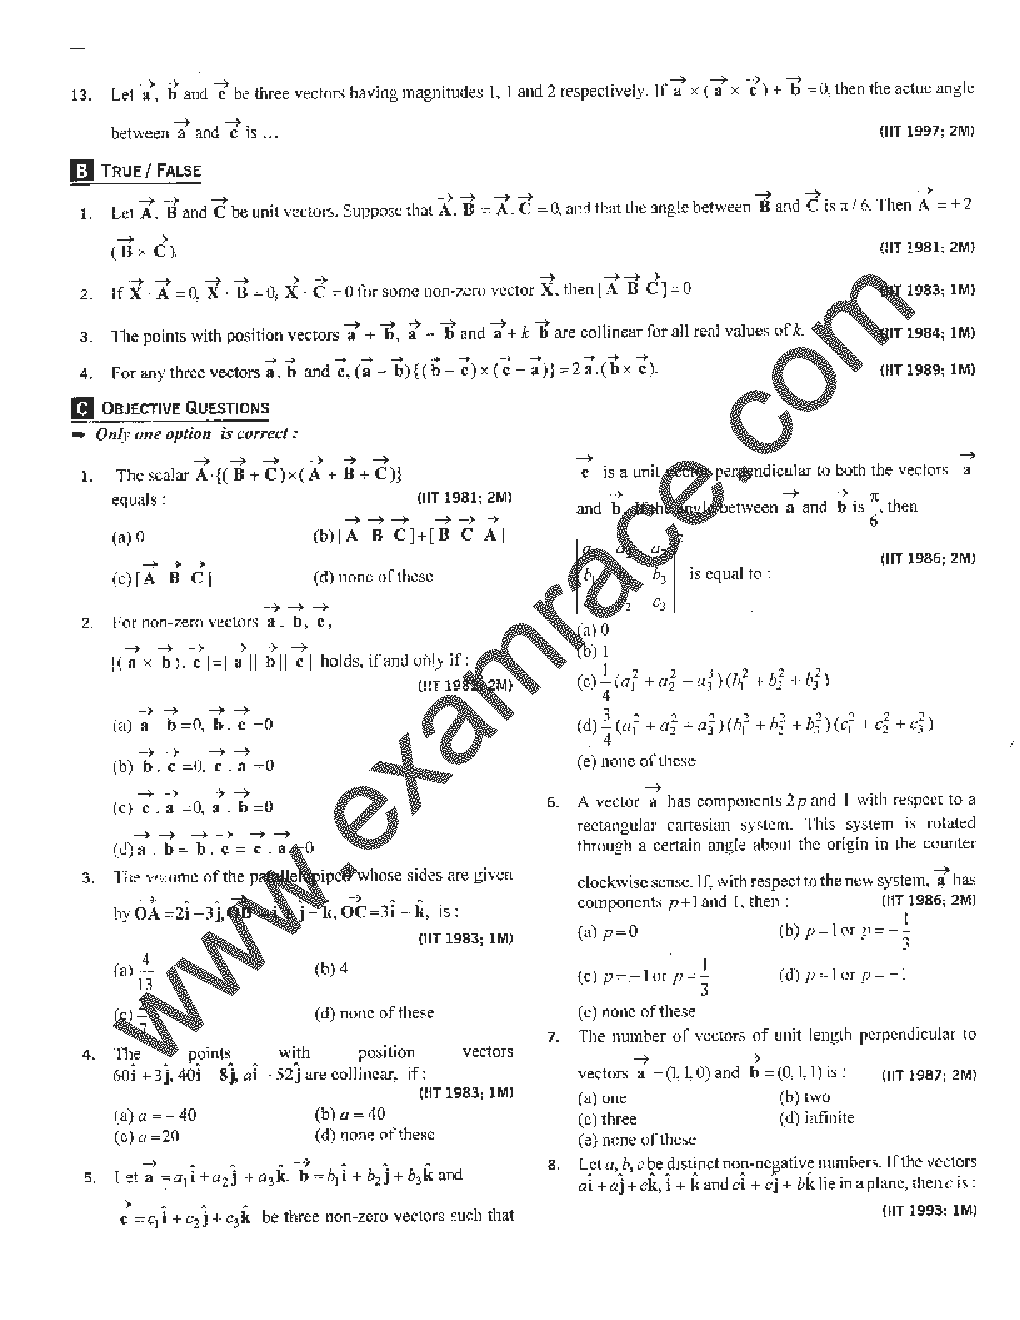 Worksheets Logarithmic Equations Worksheet With Answersclass11 jee questions vectors translation in hindi kannada malayalam page 2